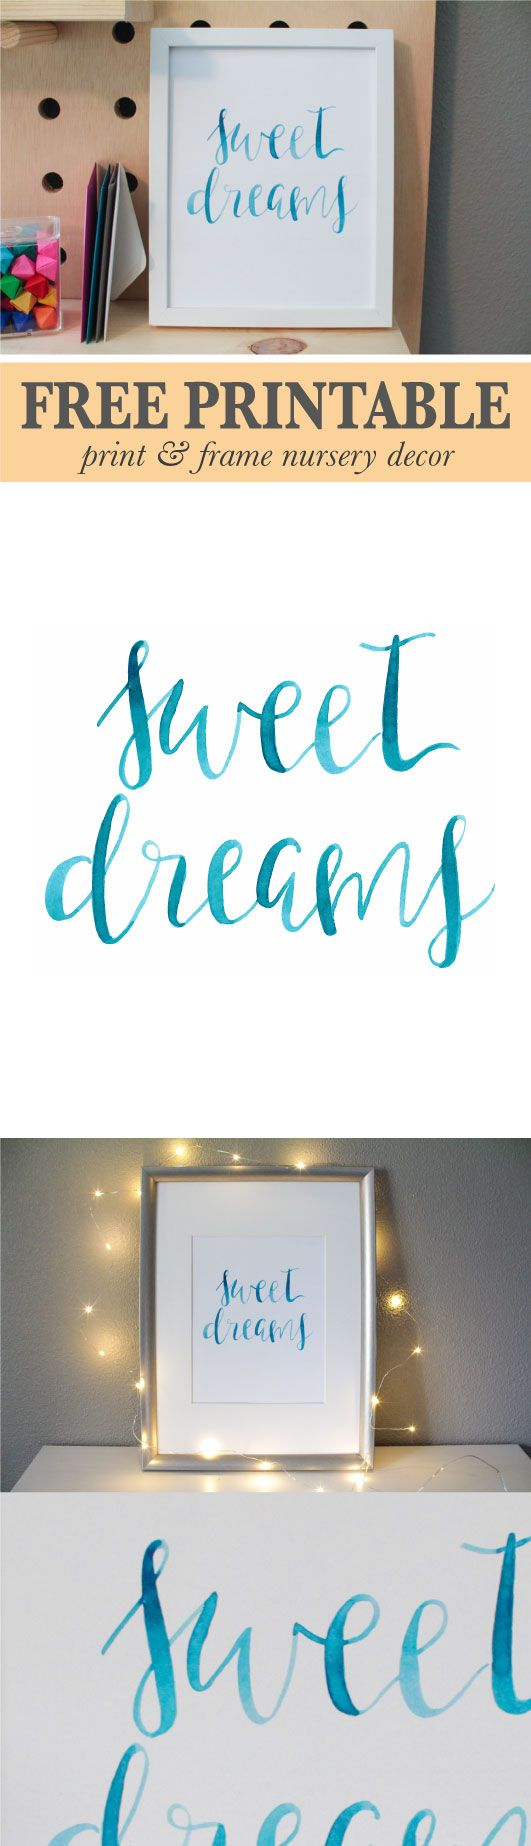 """Print a simple, """"sweet dreams"""" message for a nursery or child's room! Original watercolor version has been digitized ready to print on standard 8.5 x 11 inch paper (and trimmed for 8x10 frame)."""